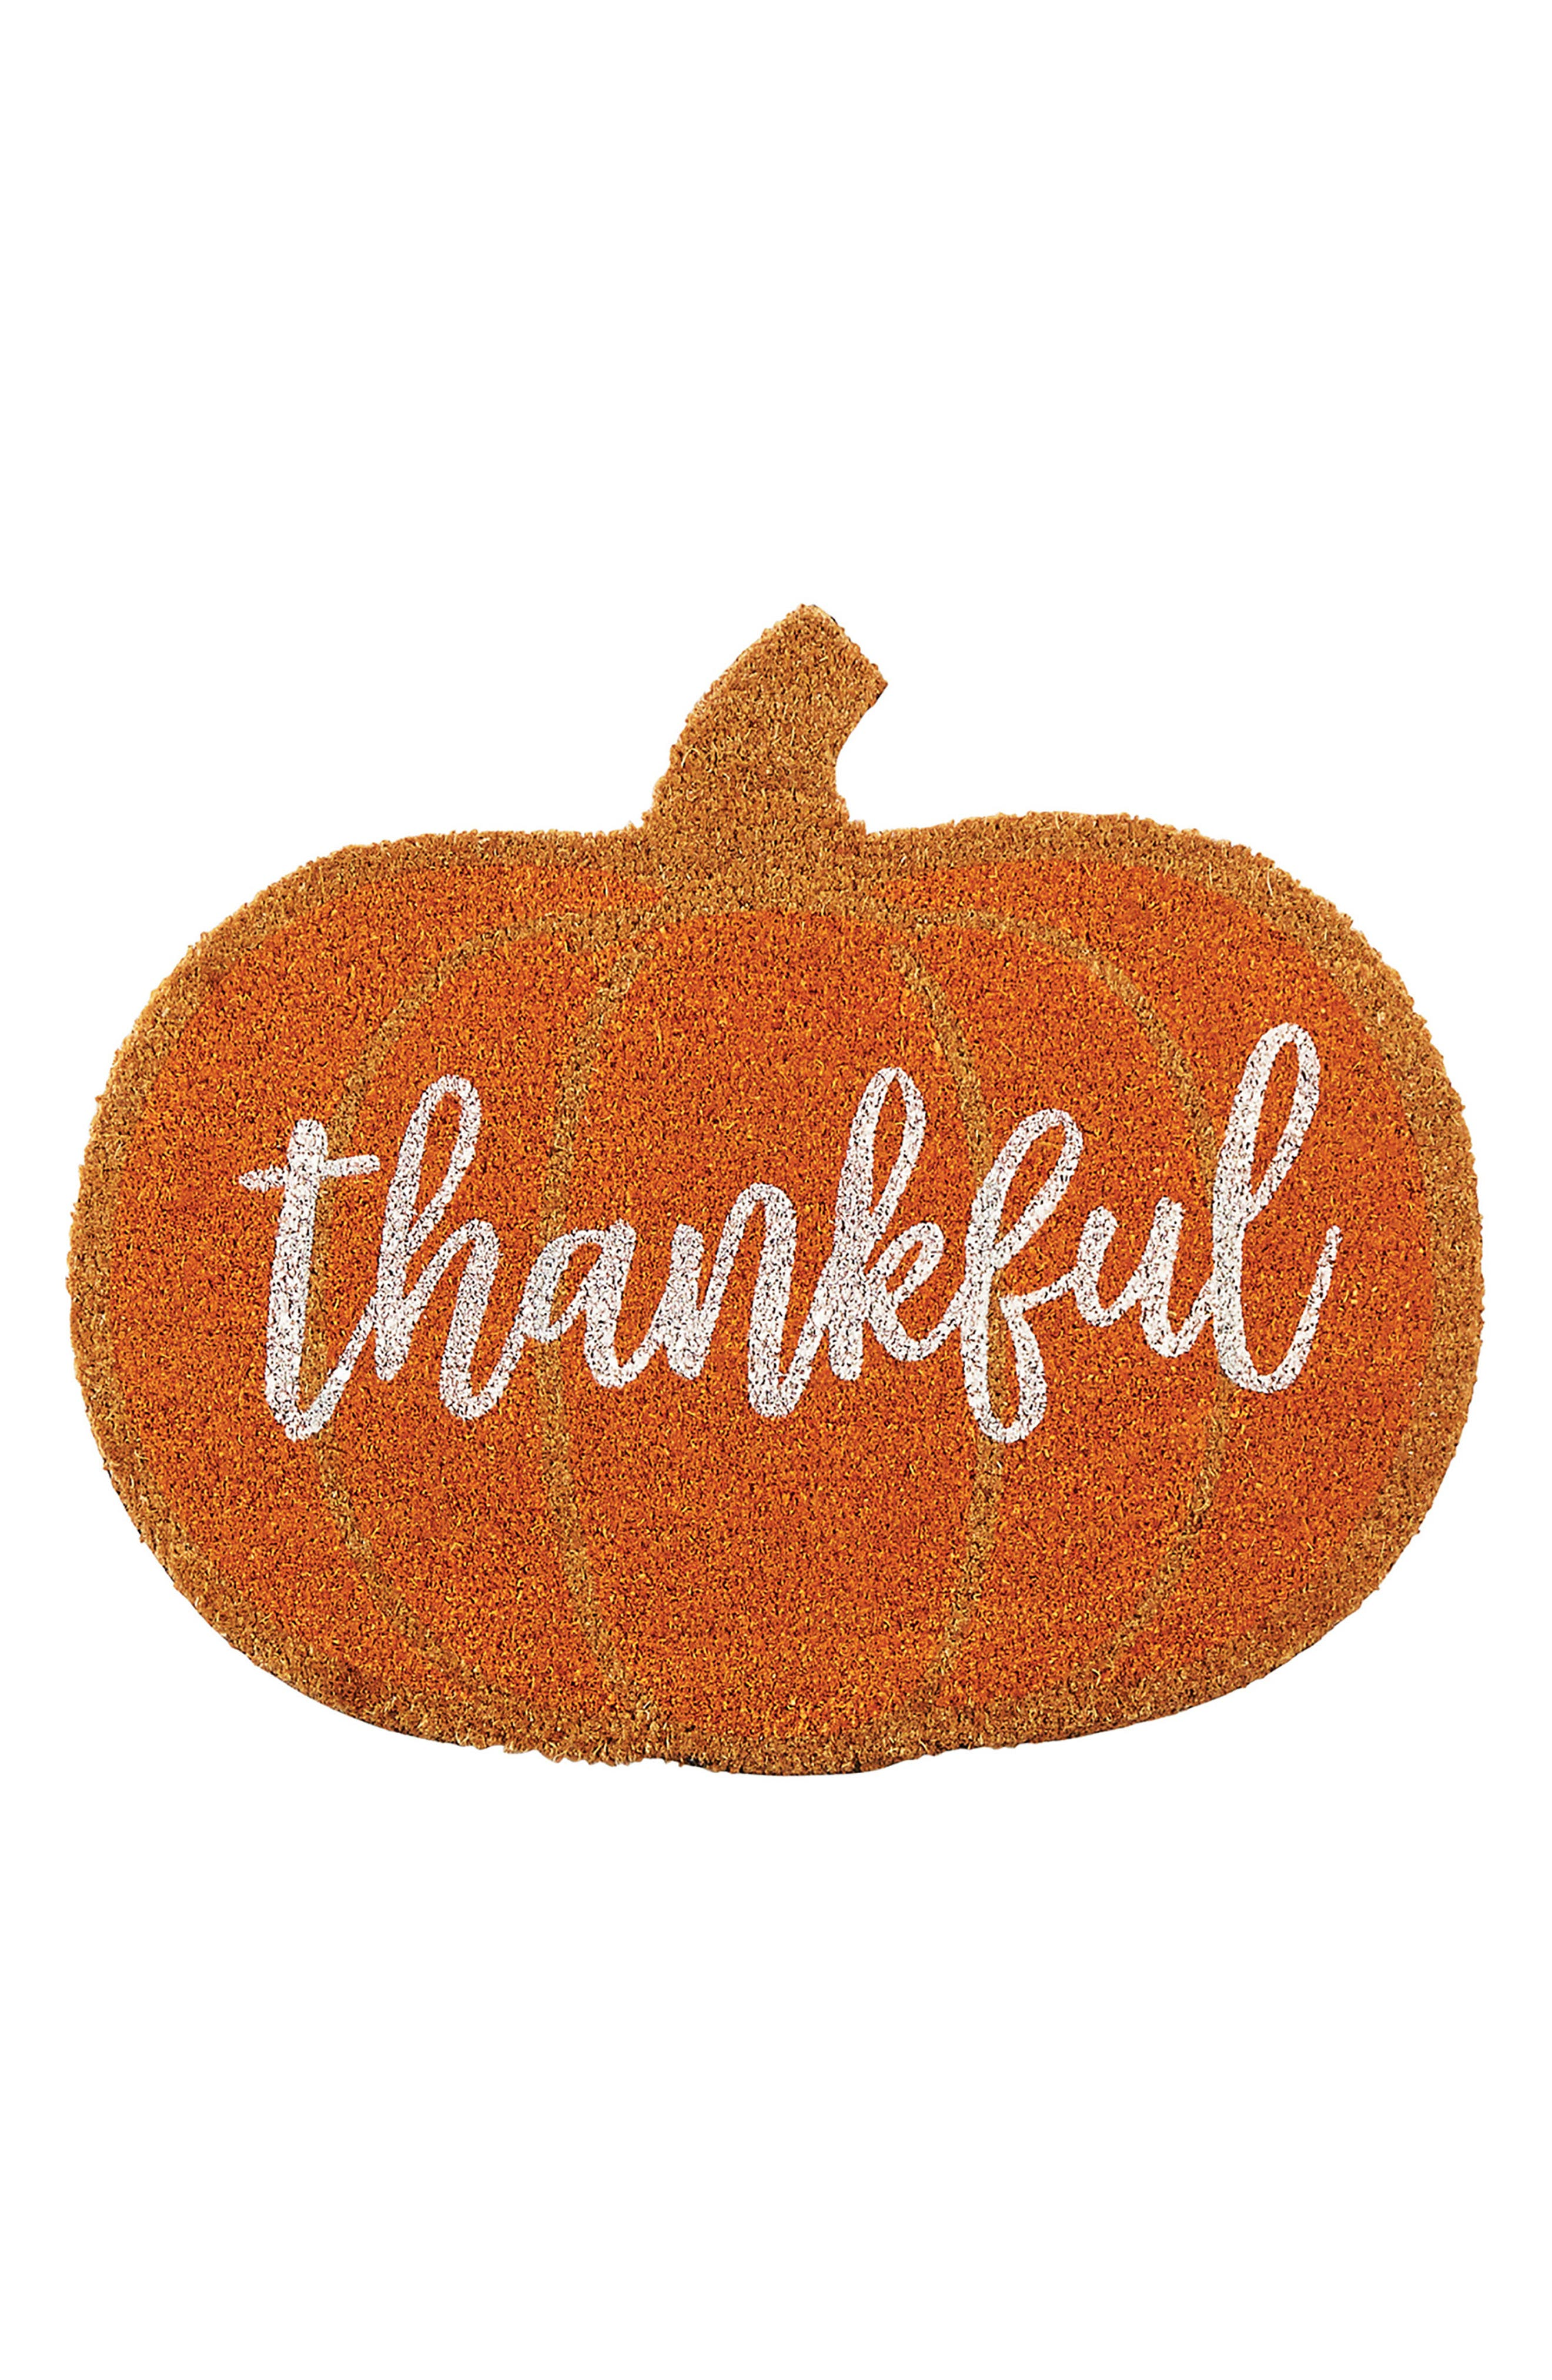 Thankful Coir Doormat,                             Main thumbnail 1, color,                             200